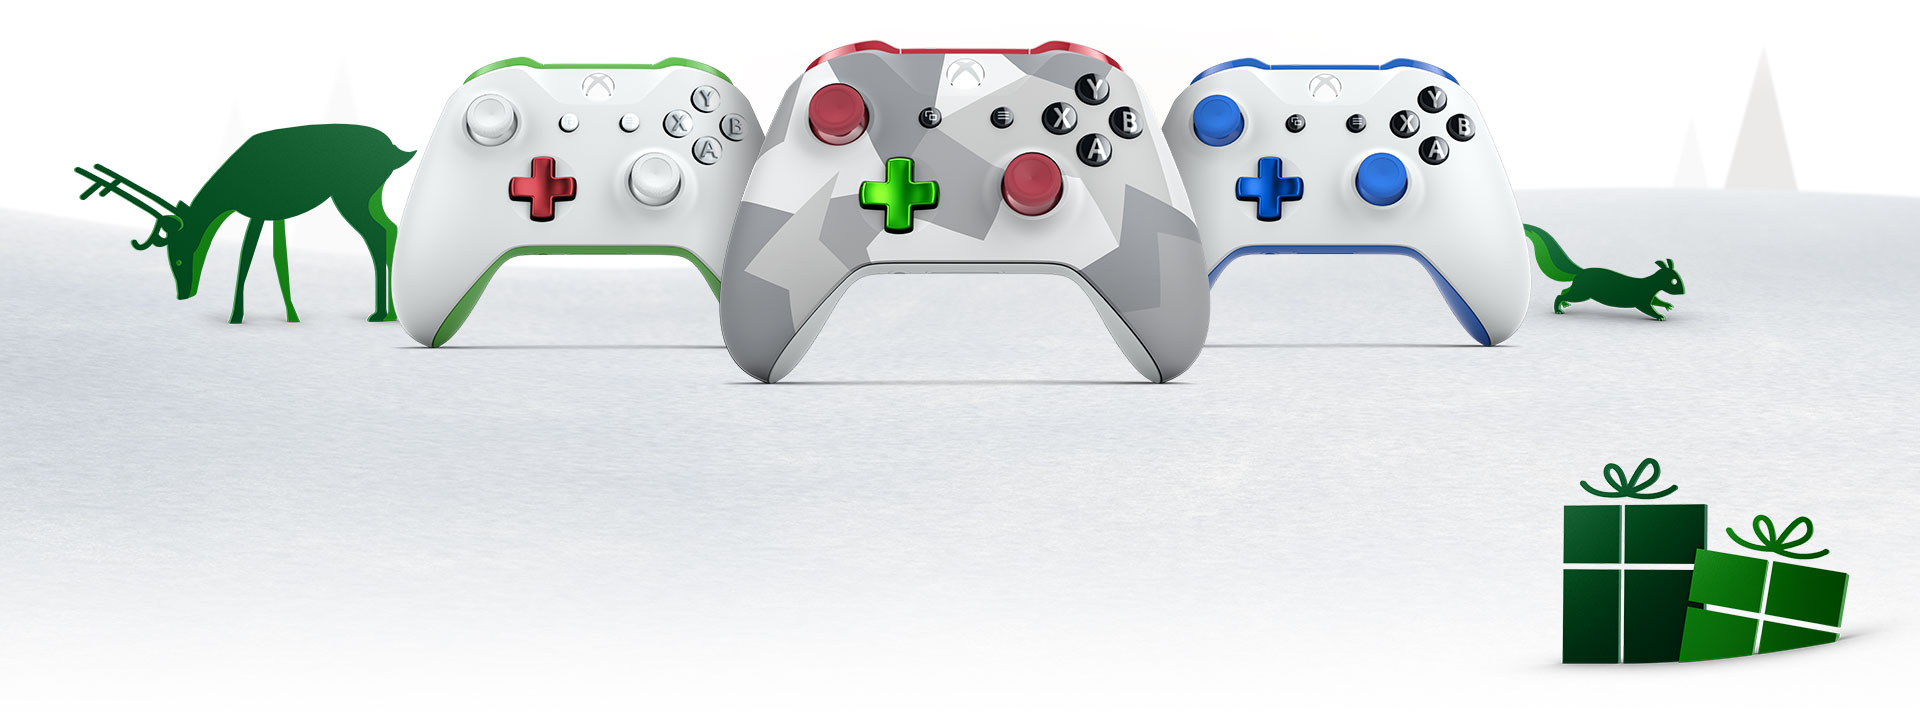 3 Xbox Design Lab controllers on a snowy background with animals and trees